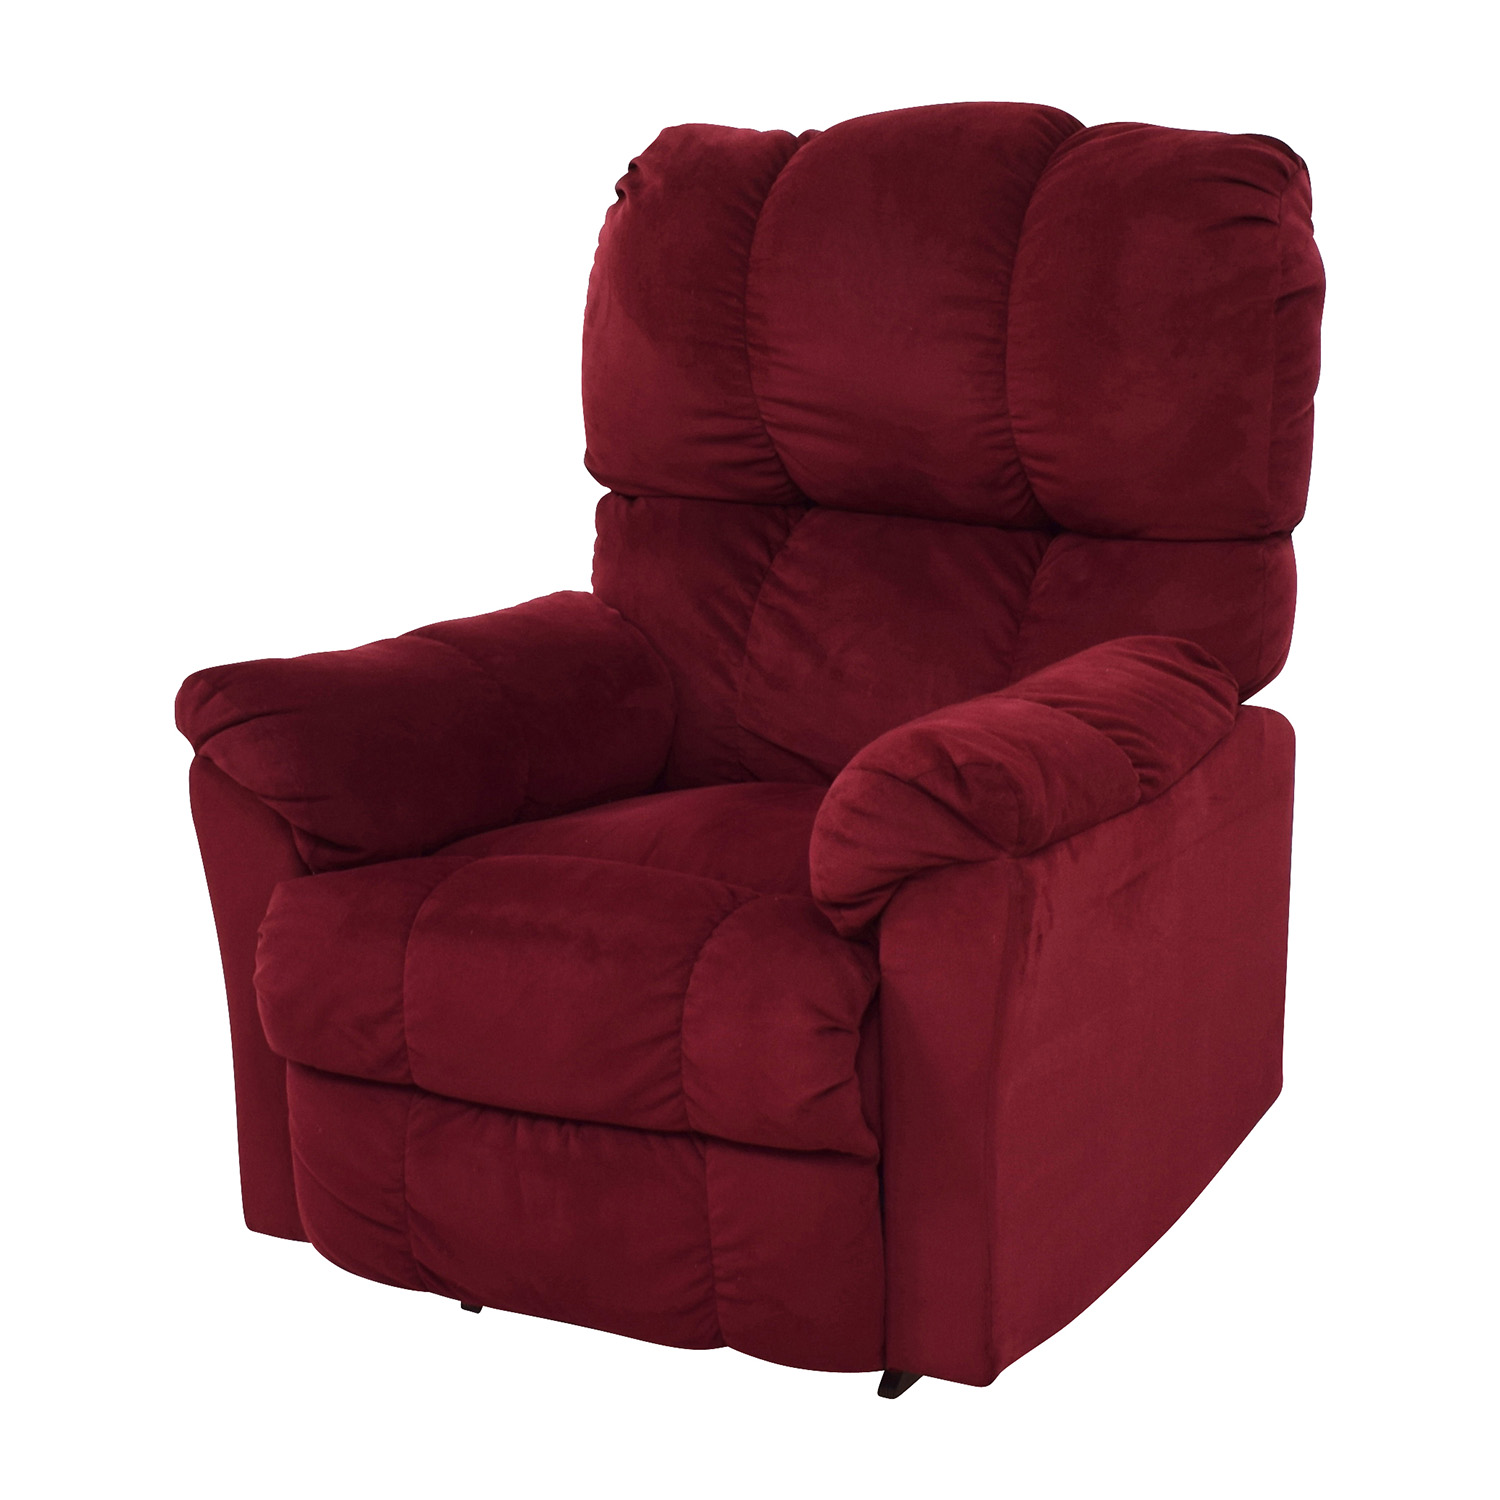 Macys Macy's Red Recliner Arm Chair / Chairs